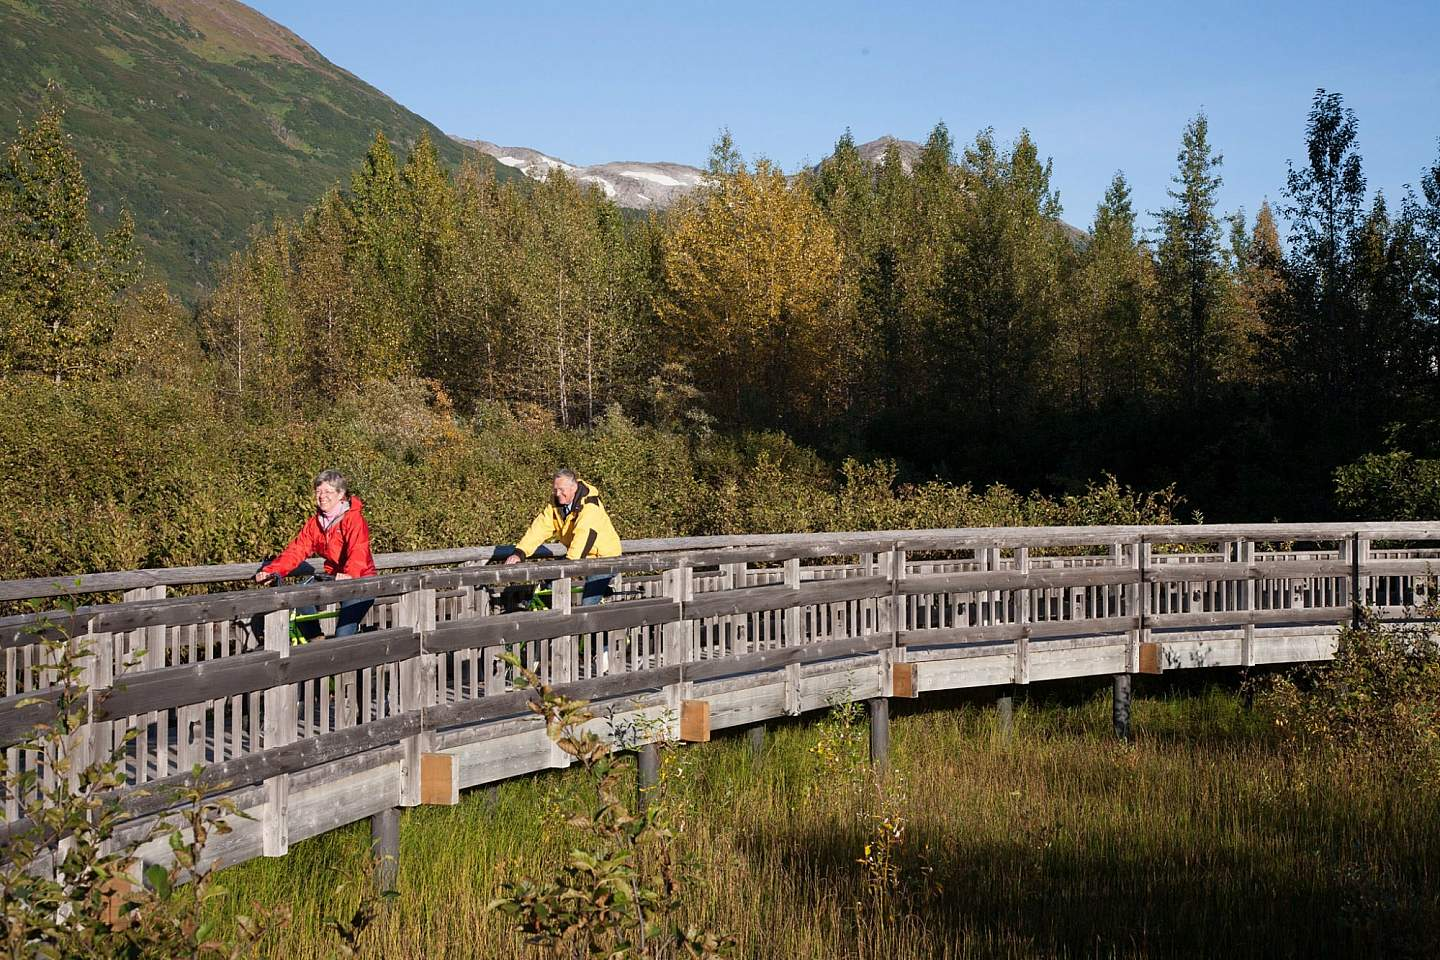 Bike the 5-mile Trail of Blue Ice through the Portage Valley, passing glacial lakes and ending at Portage Lake.